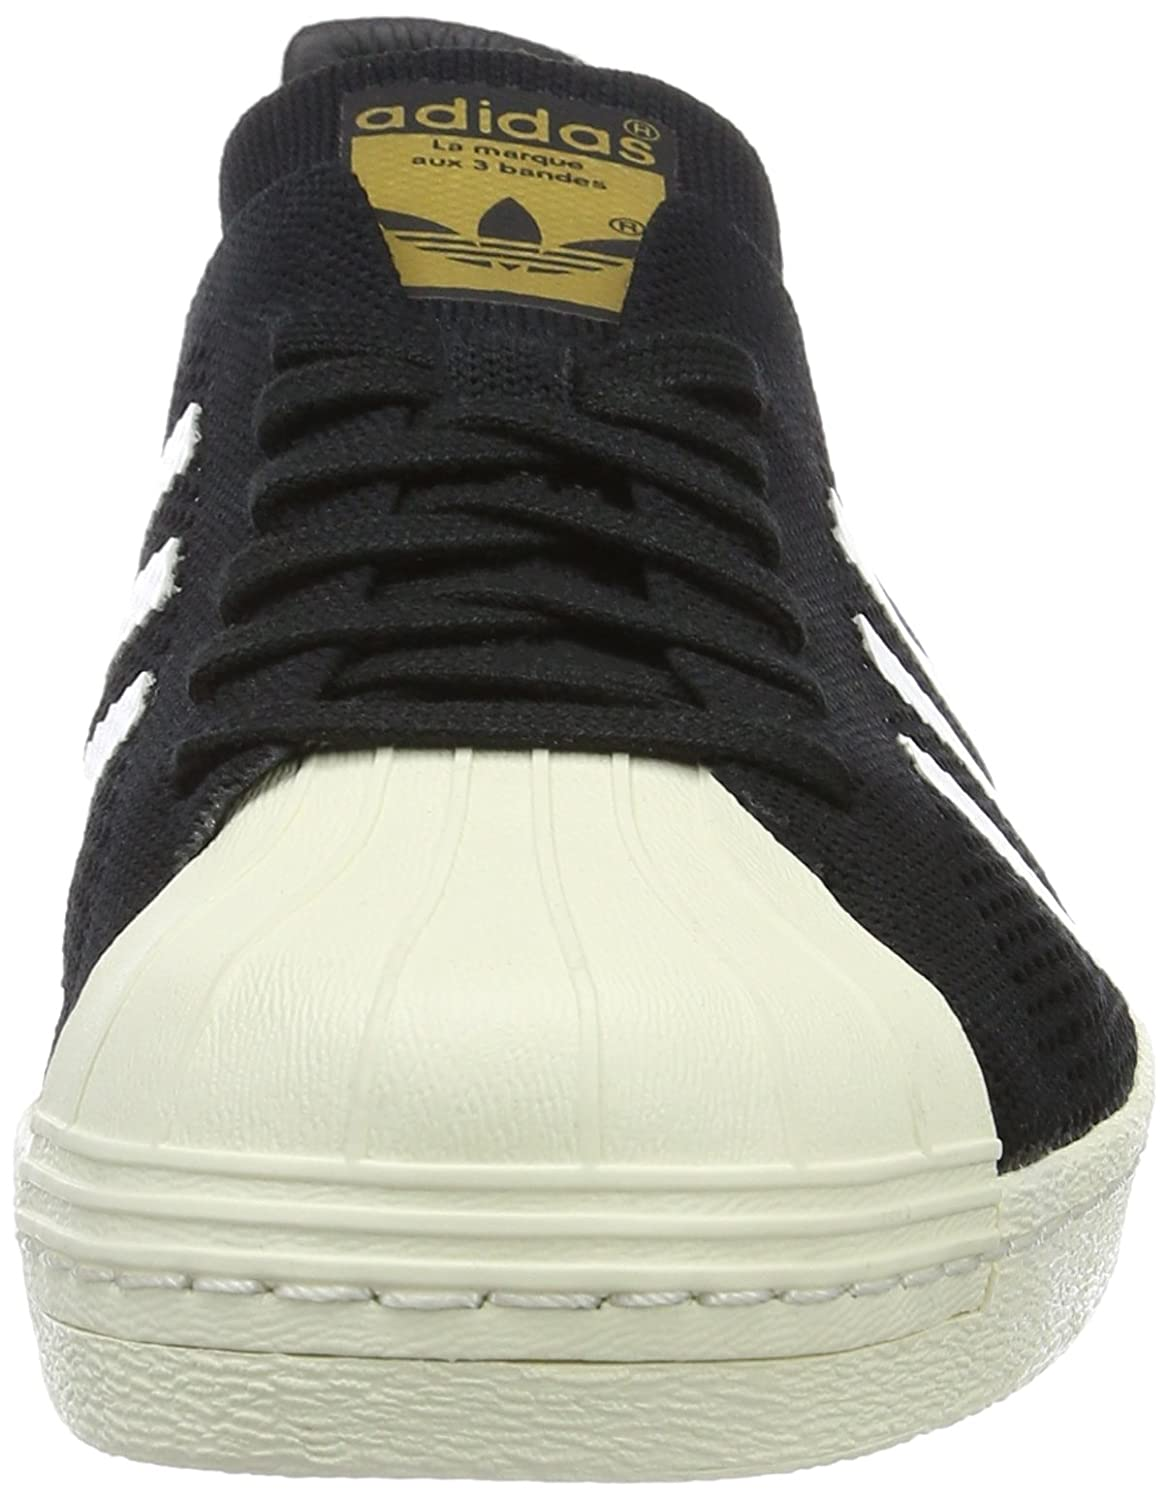 competitive price fb66f 52594 adidas Unisex Adults  Superstar 80s Prime Low-Top Sneakers  Amazon.co.uk   Shoes   Bags